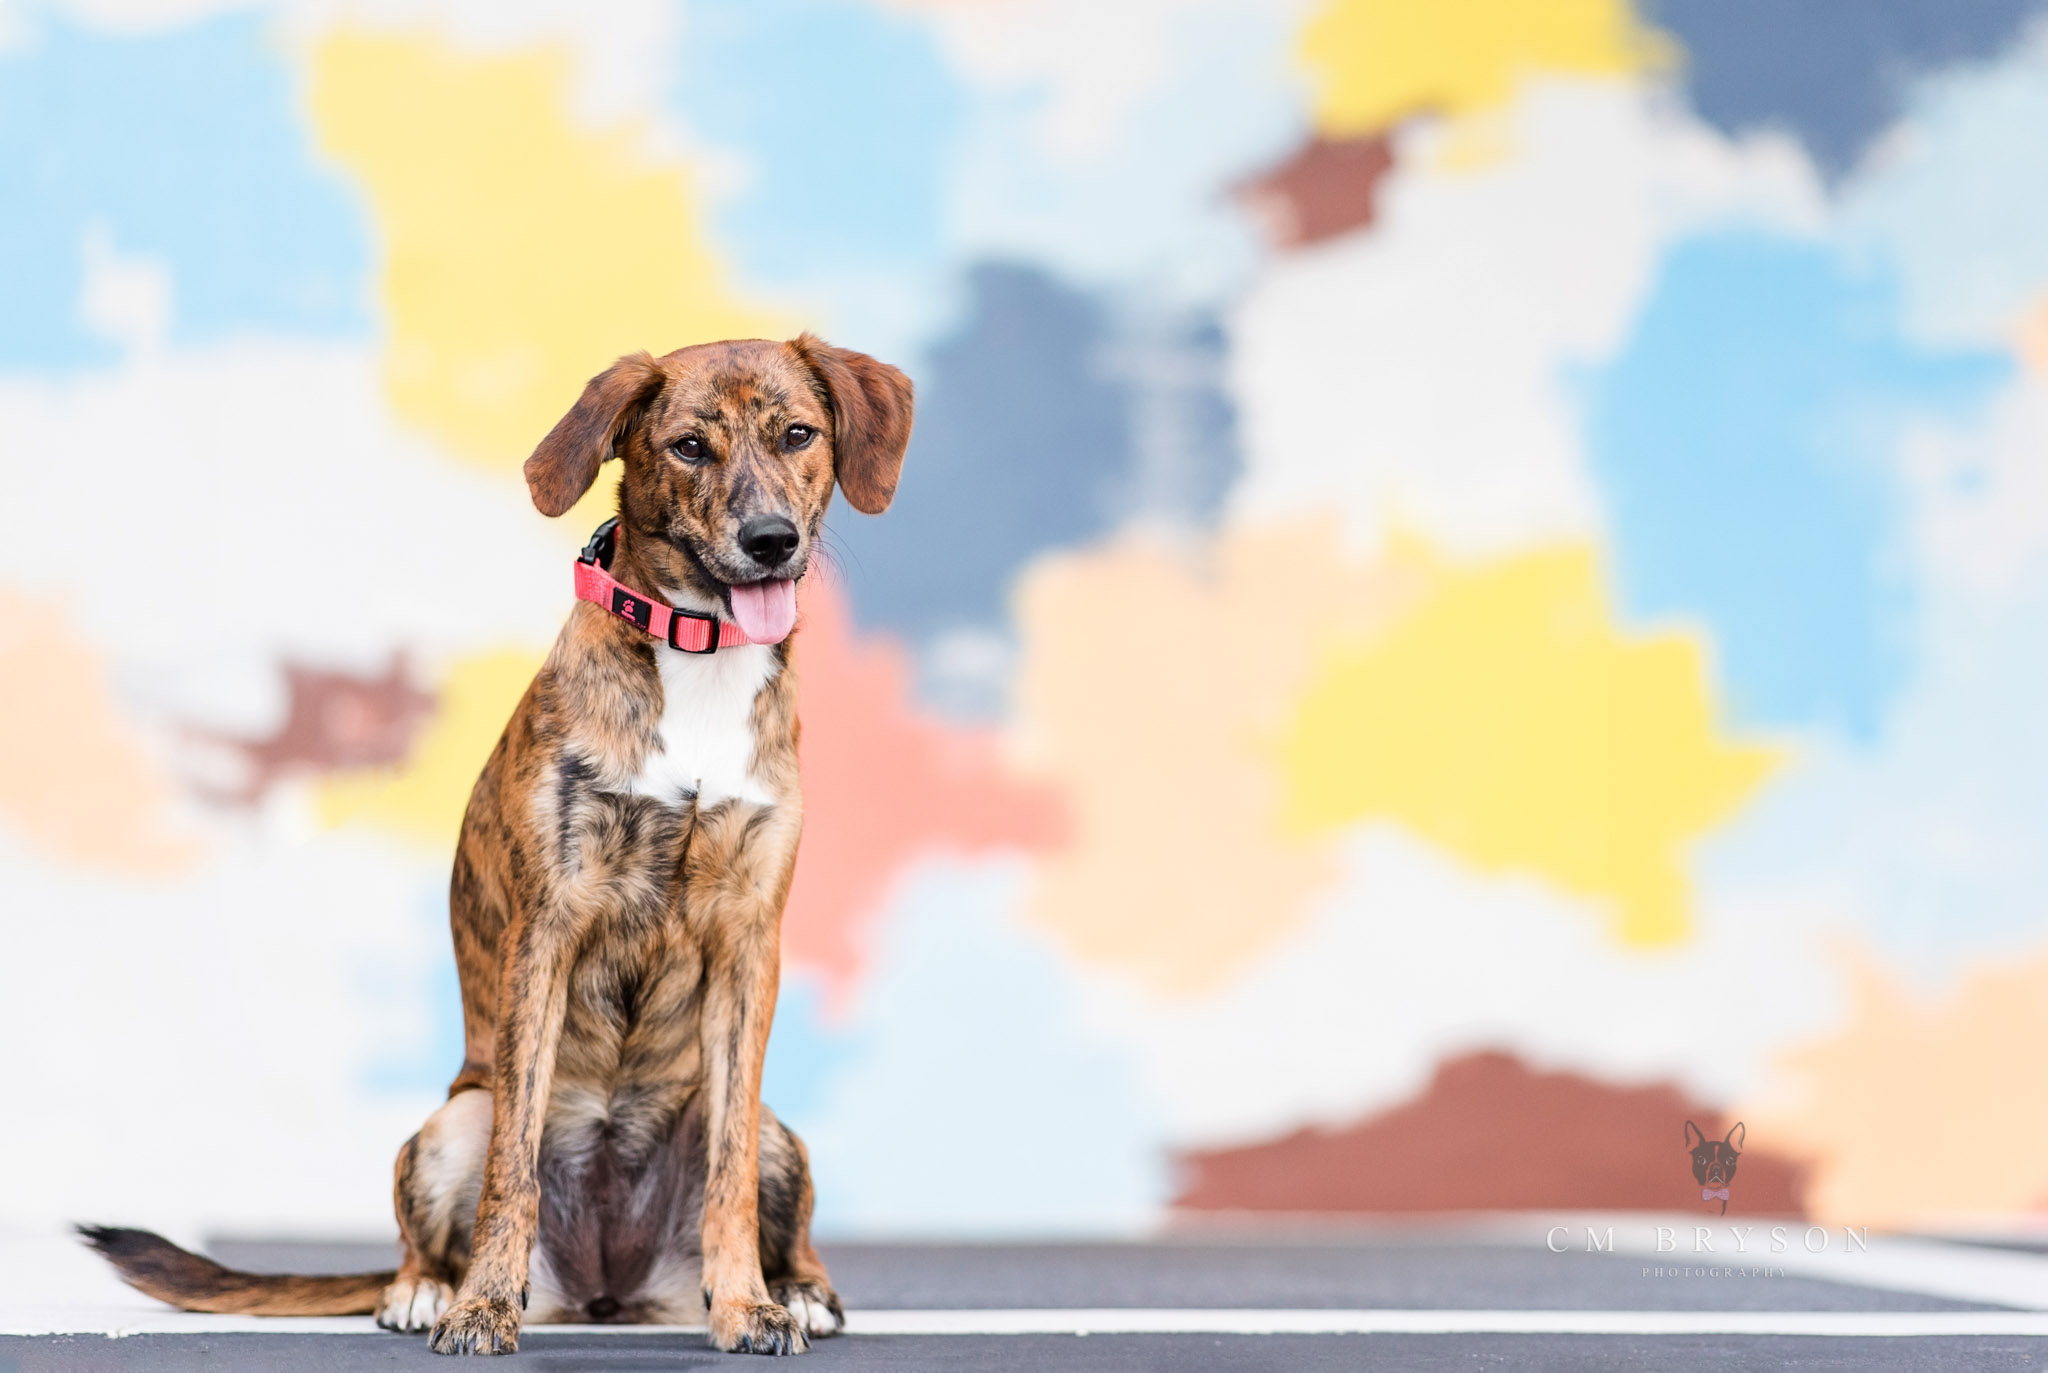 Dogs are welcome at Atlanta's Ponce City Market